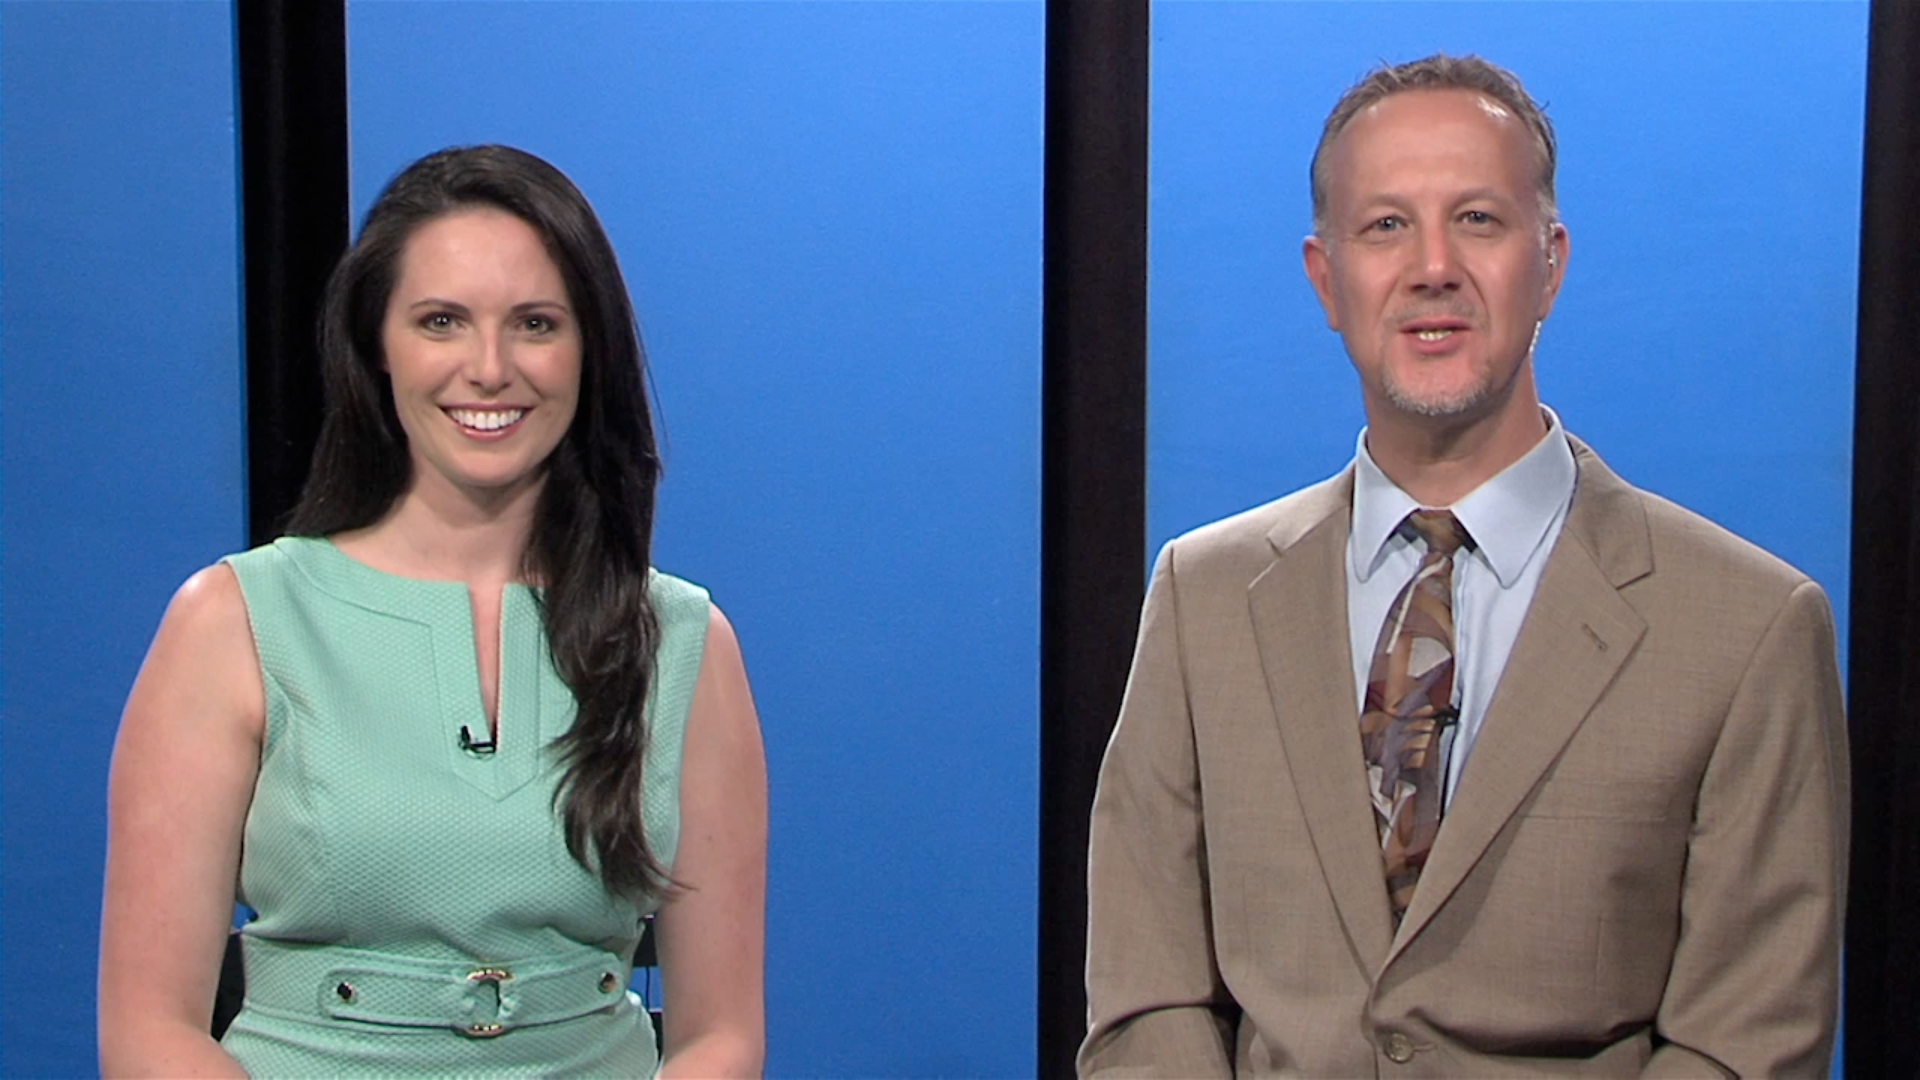 Newscast: June 5, 2013